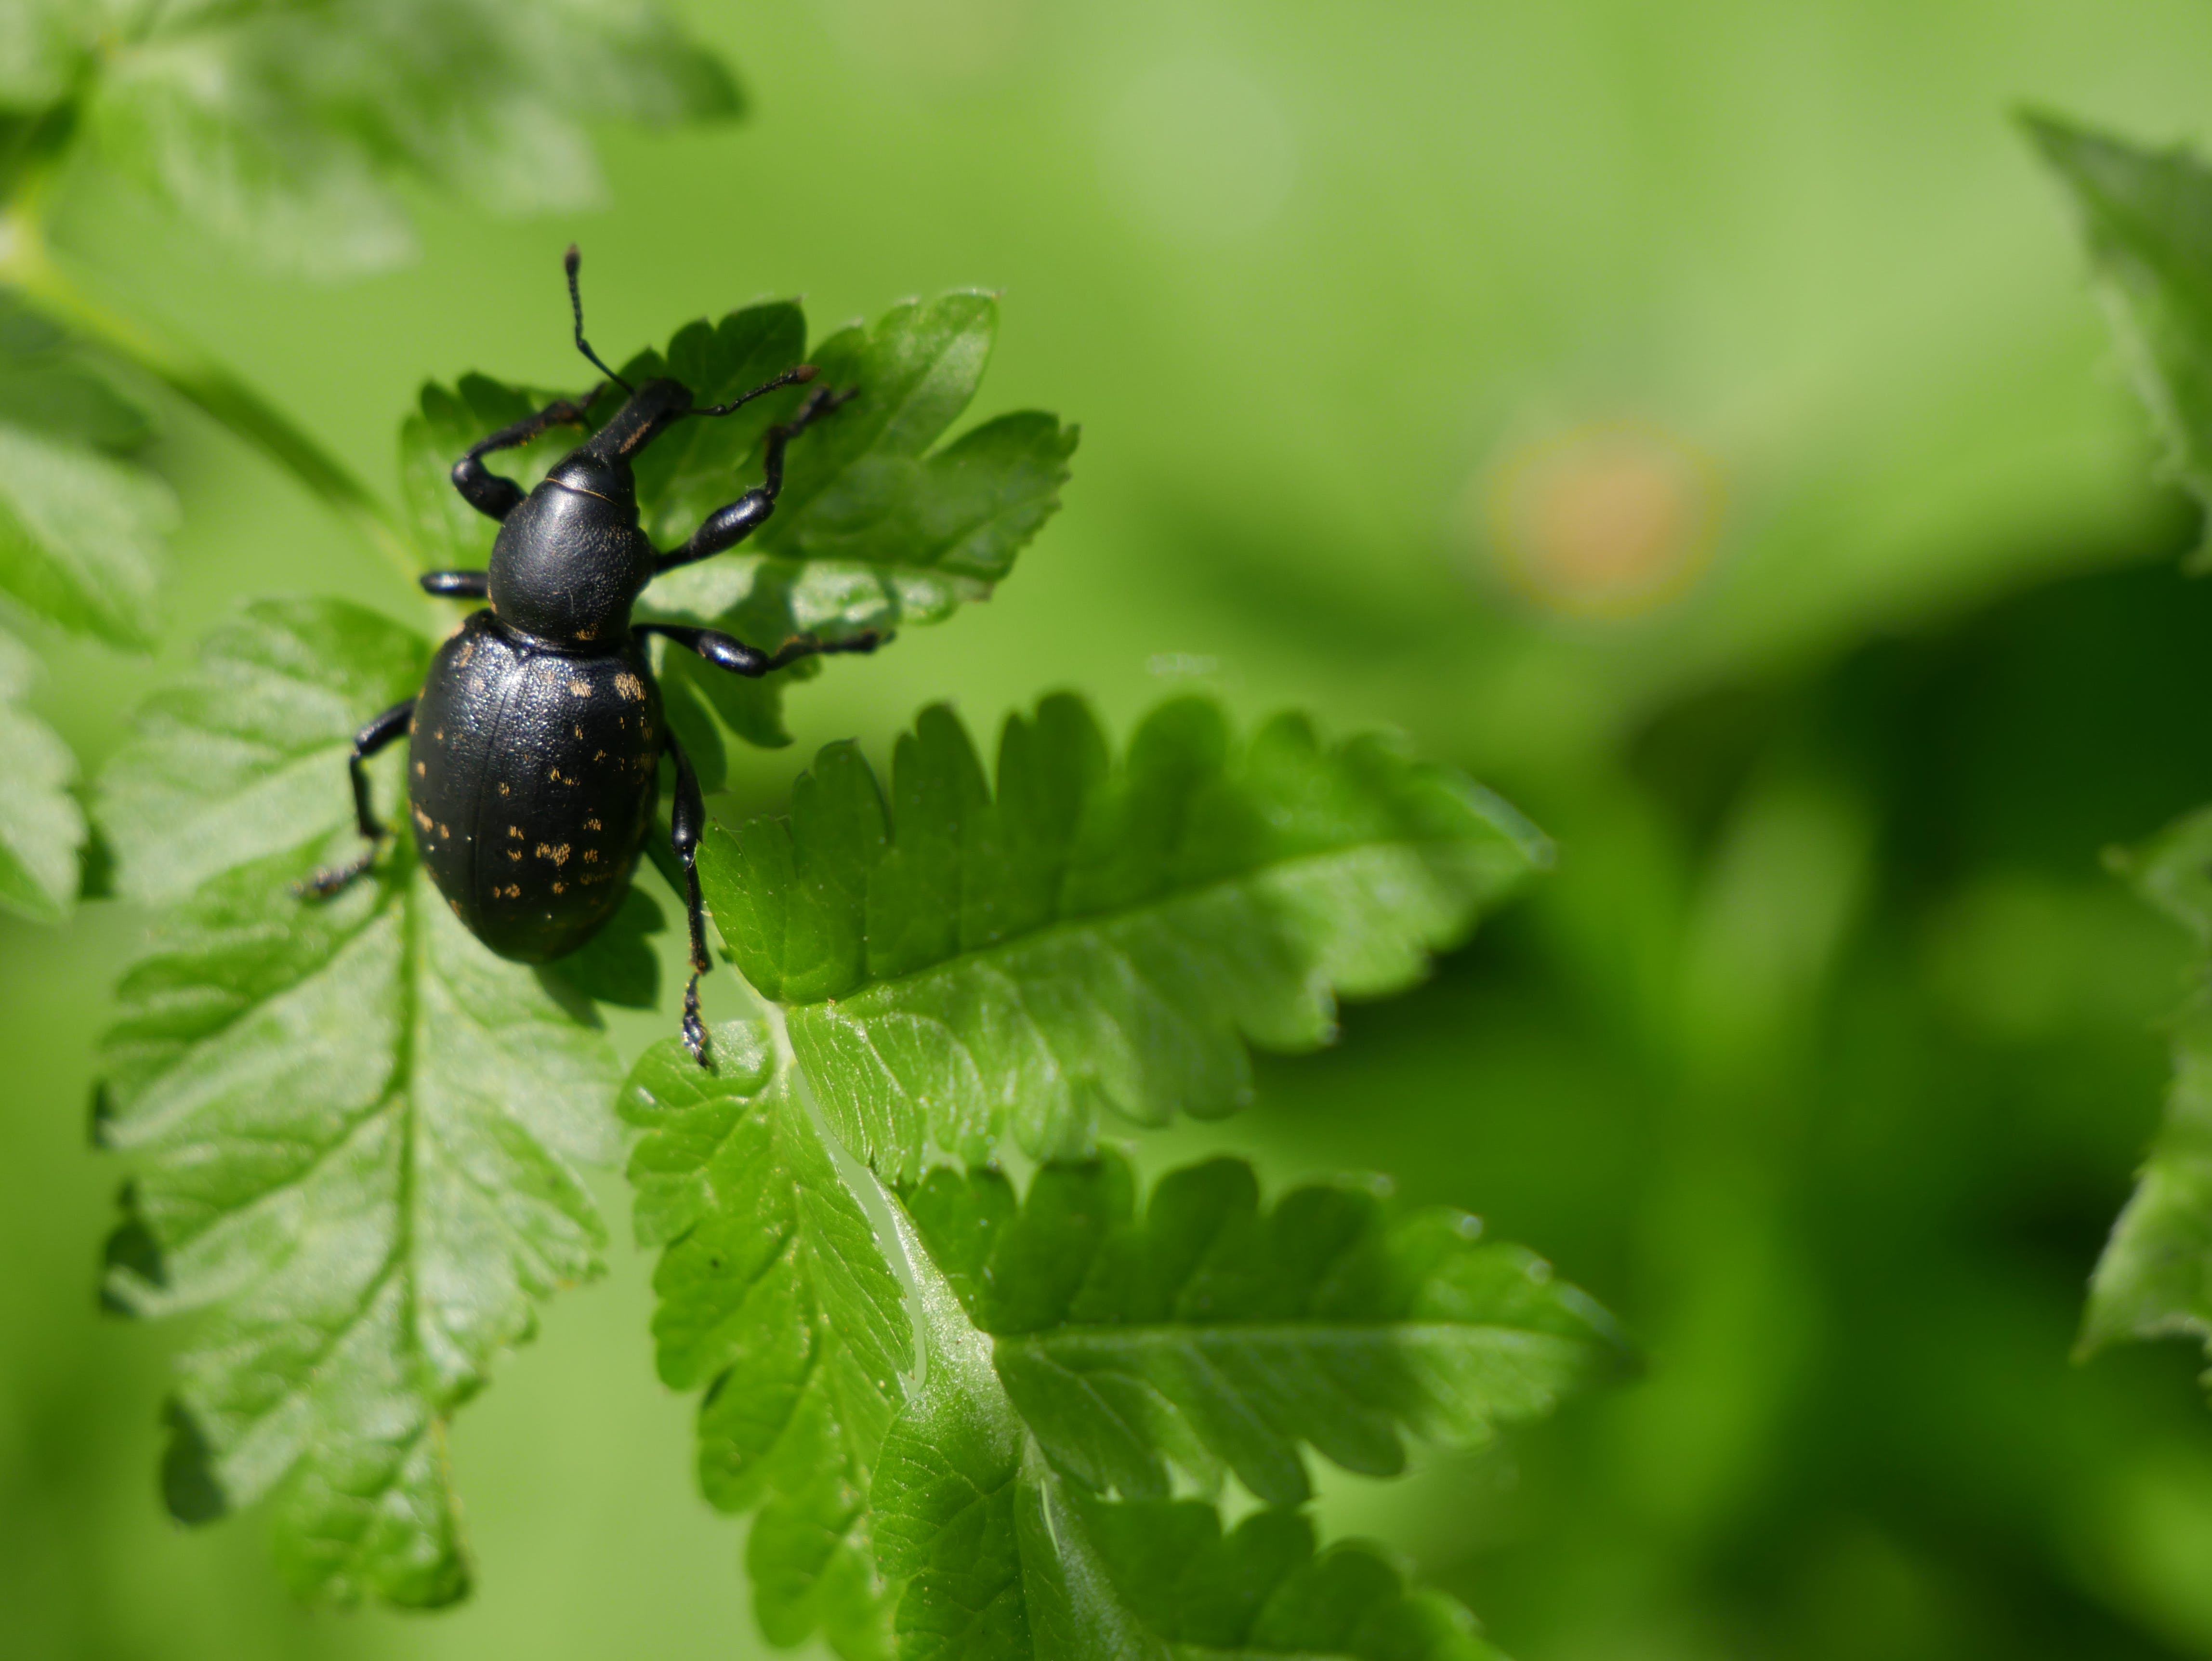 Black Weevil on Green Leaf